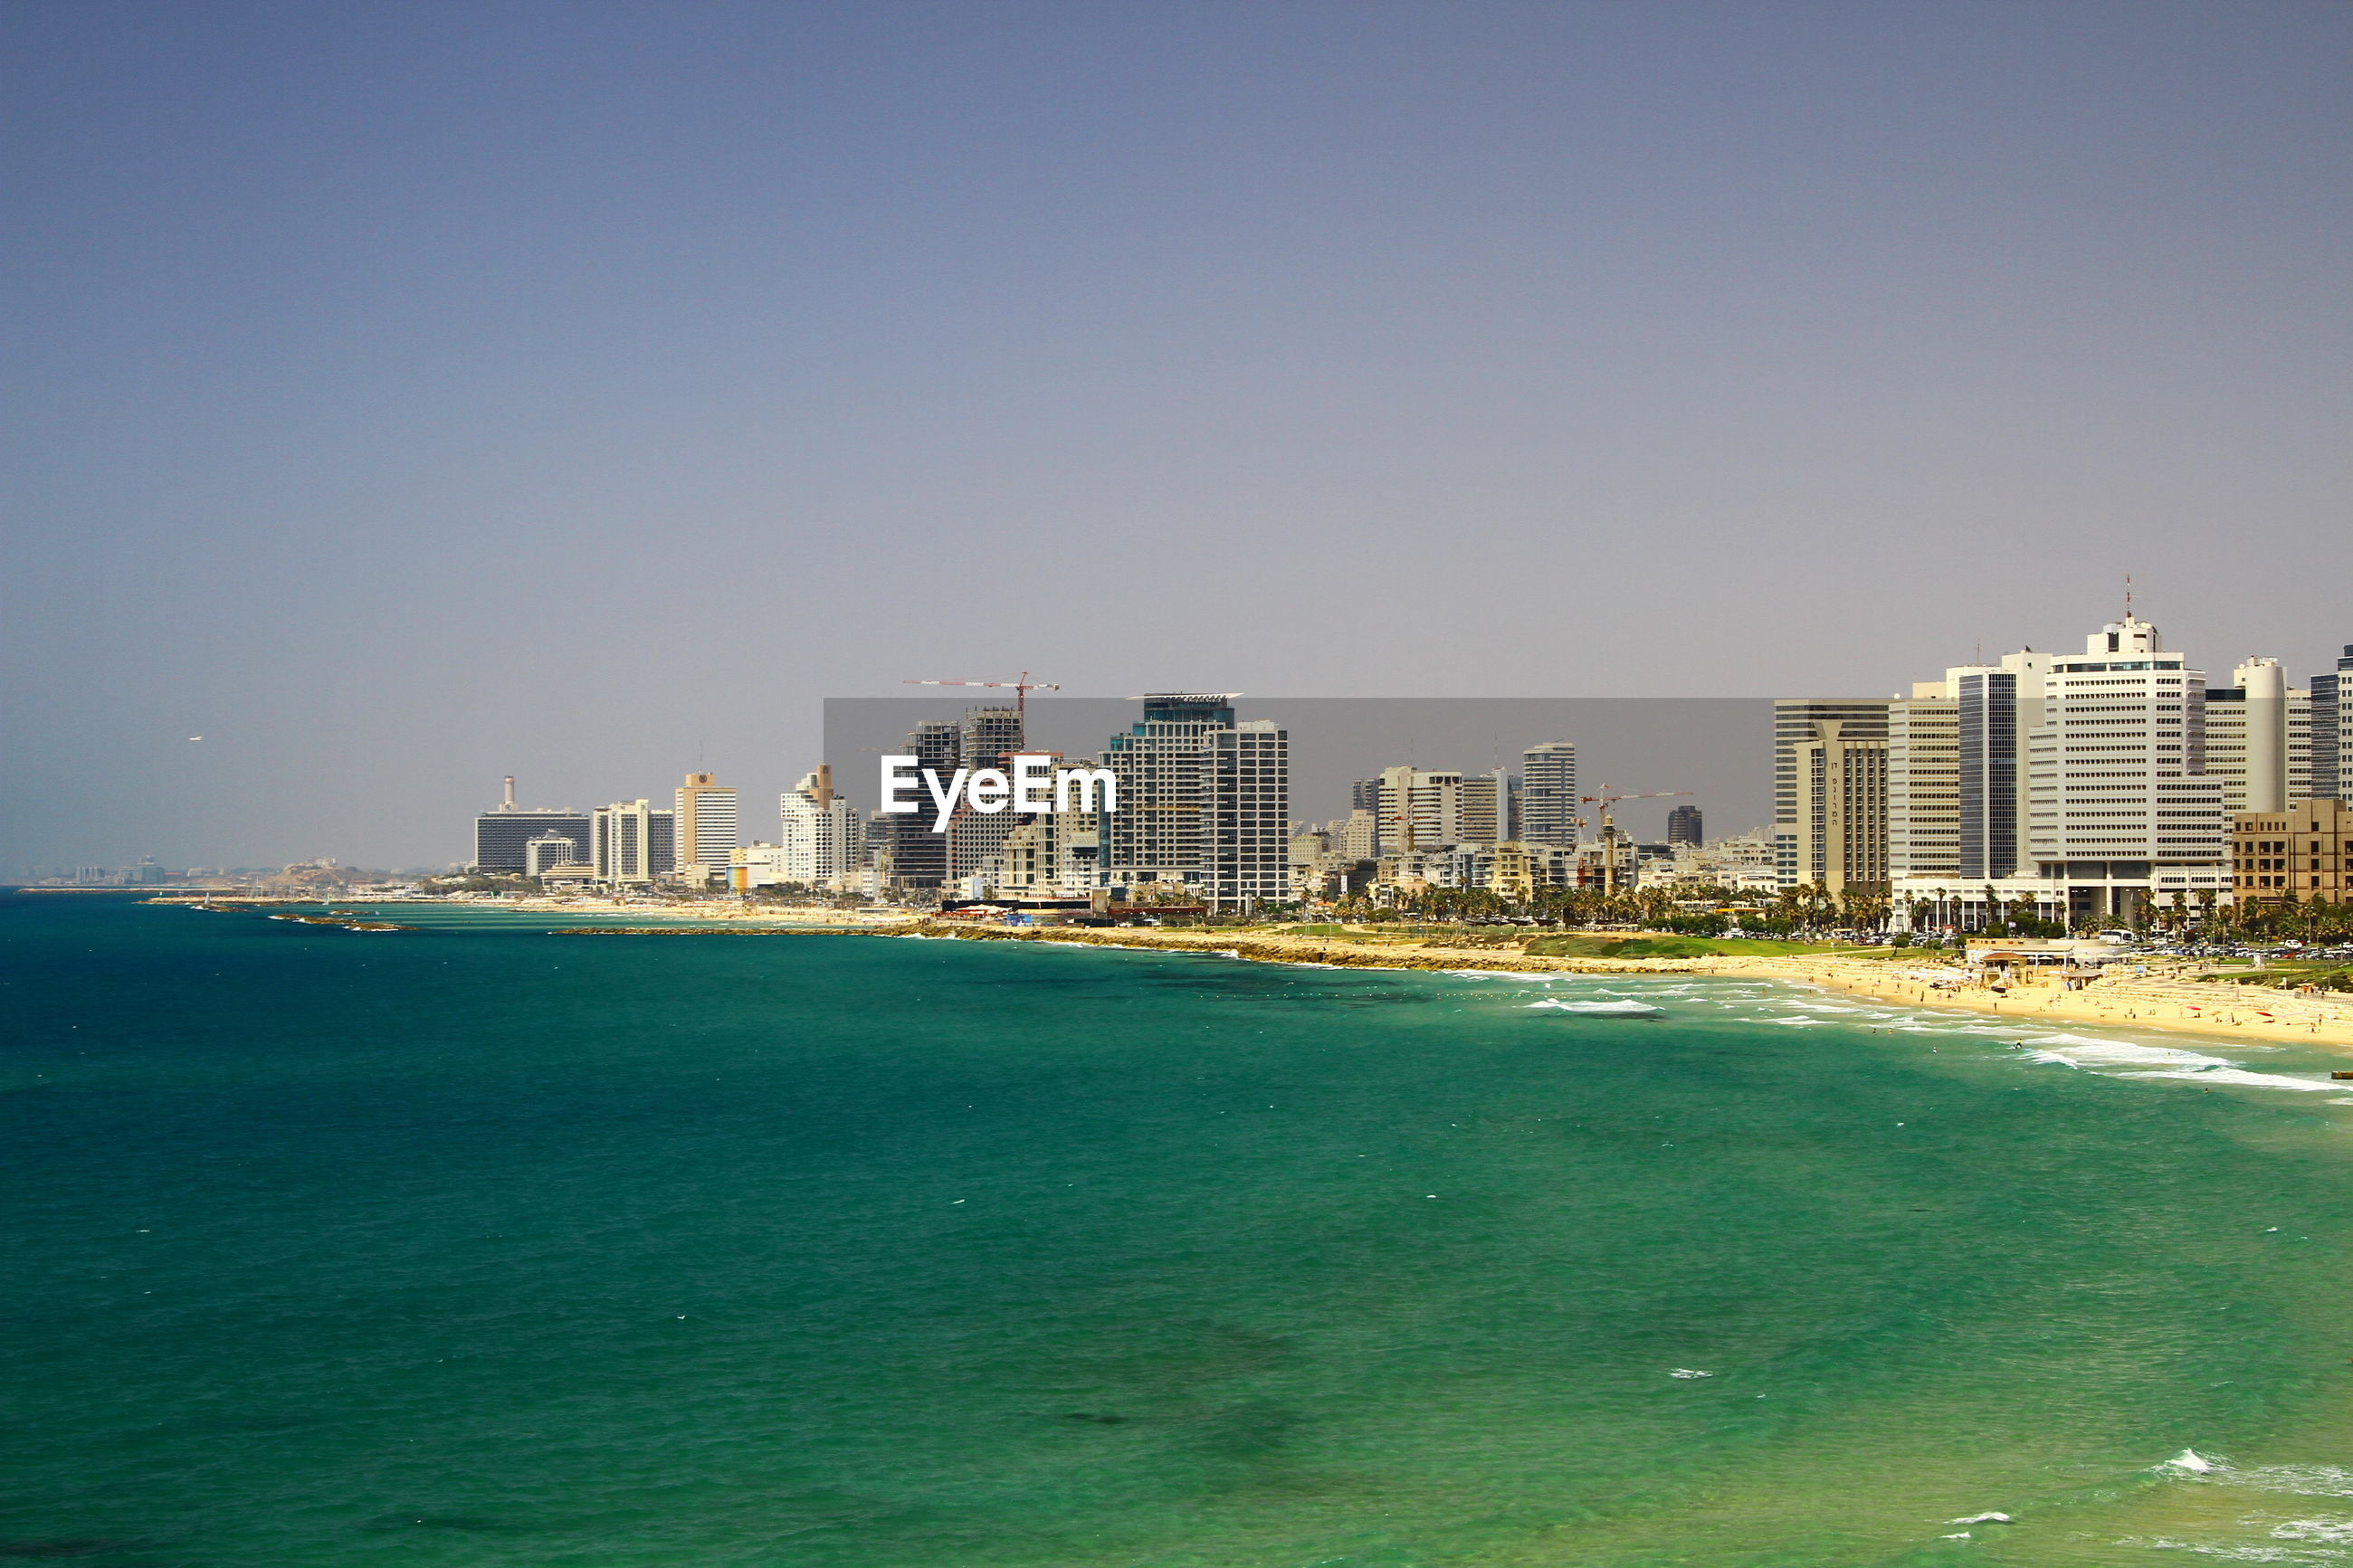 SCENIC VIEW OF SEA AND CITY AGAINST CLEAR SKY